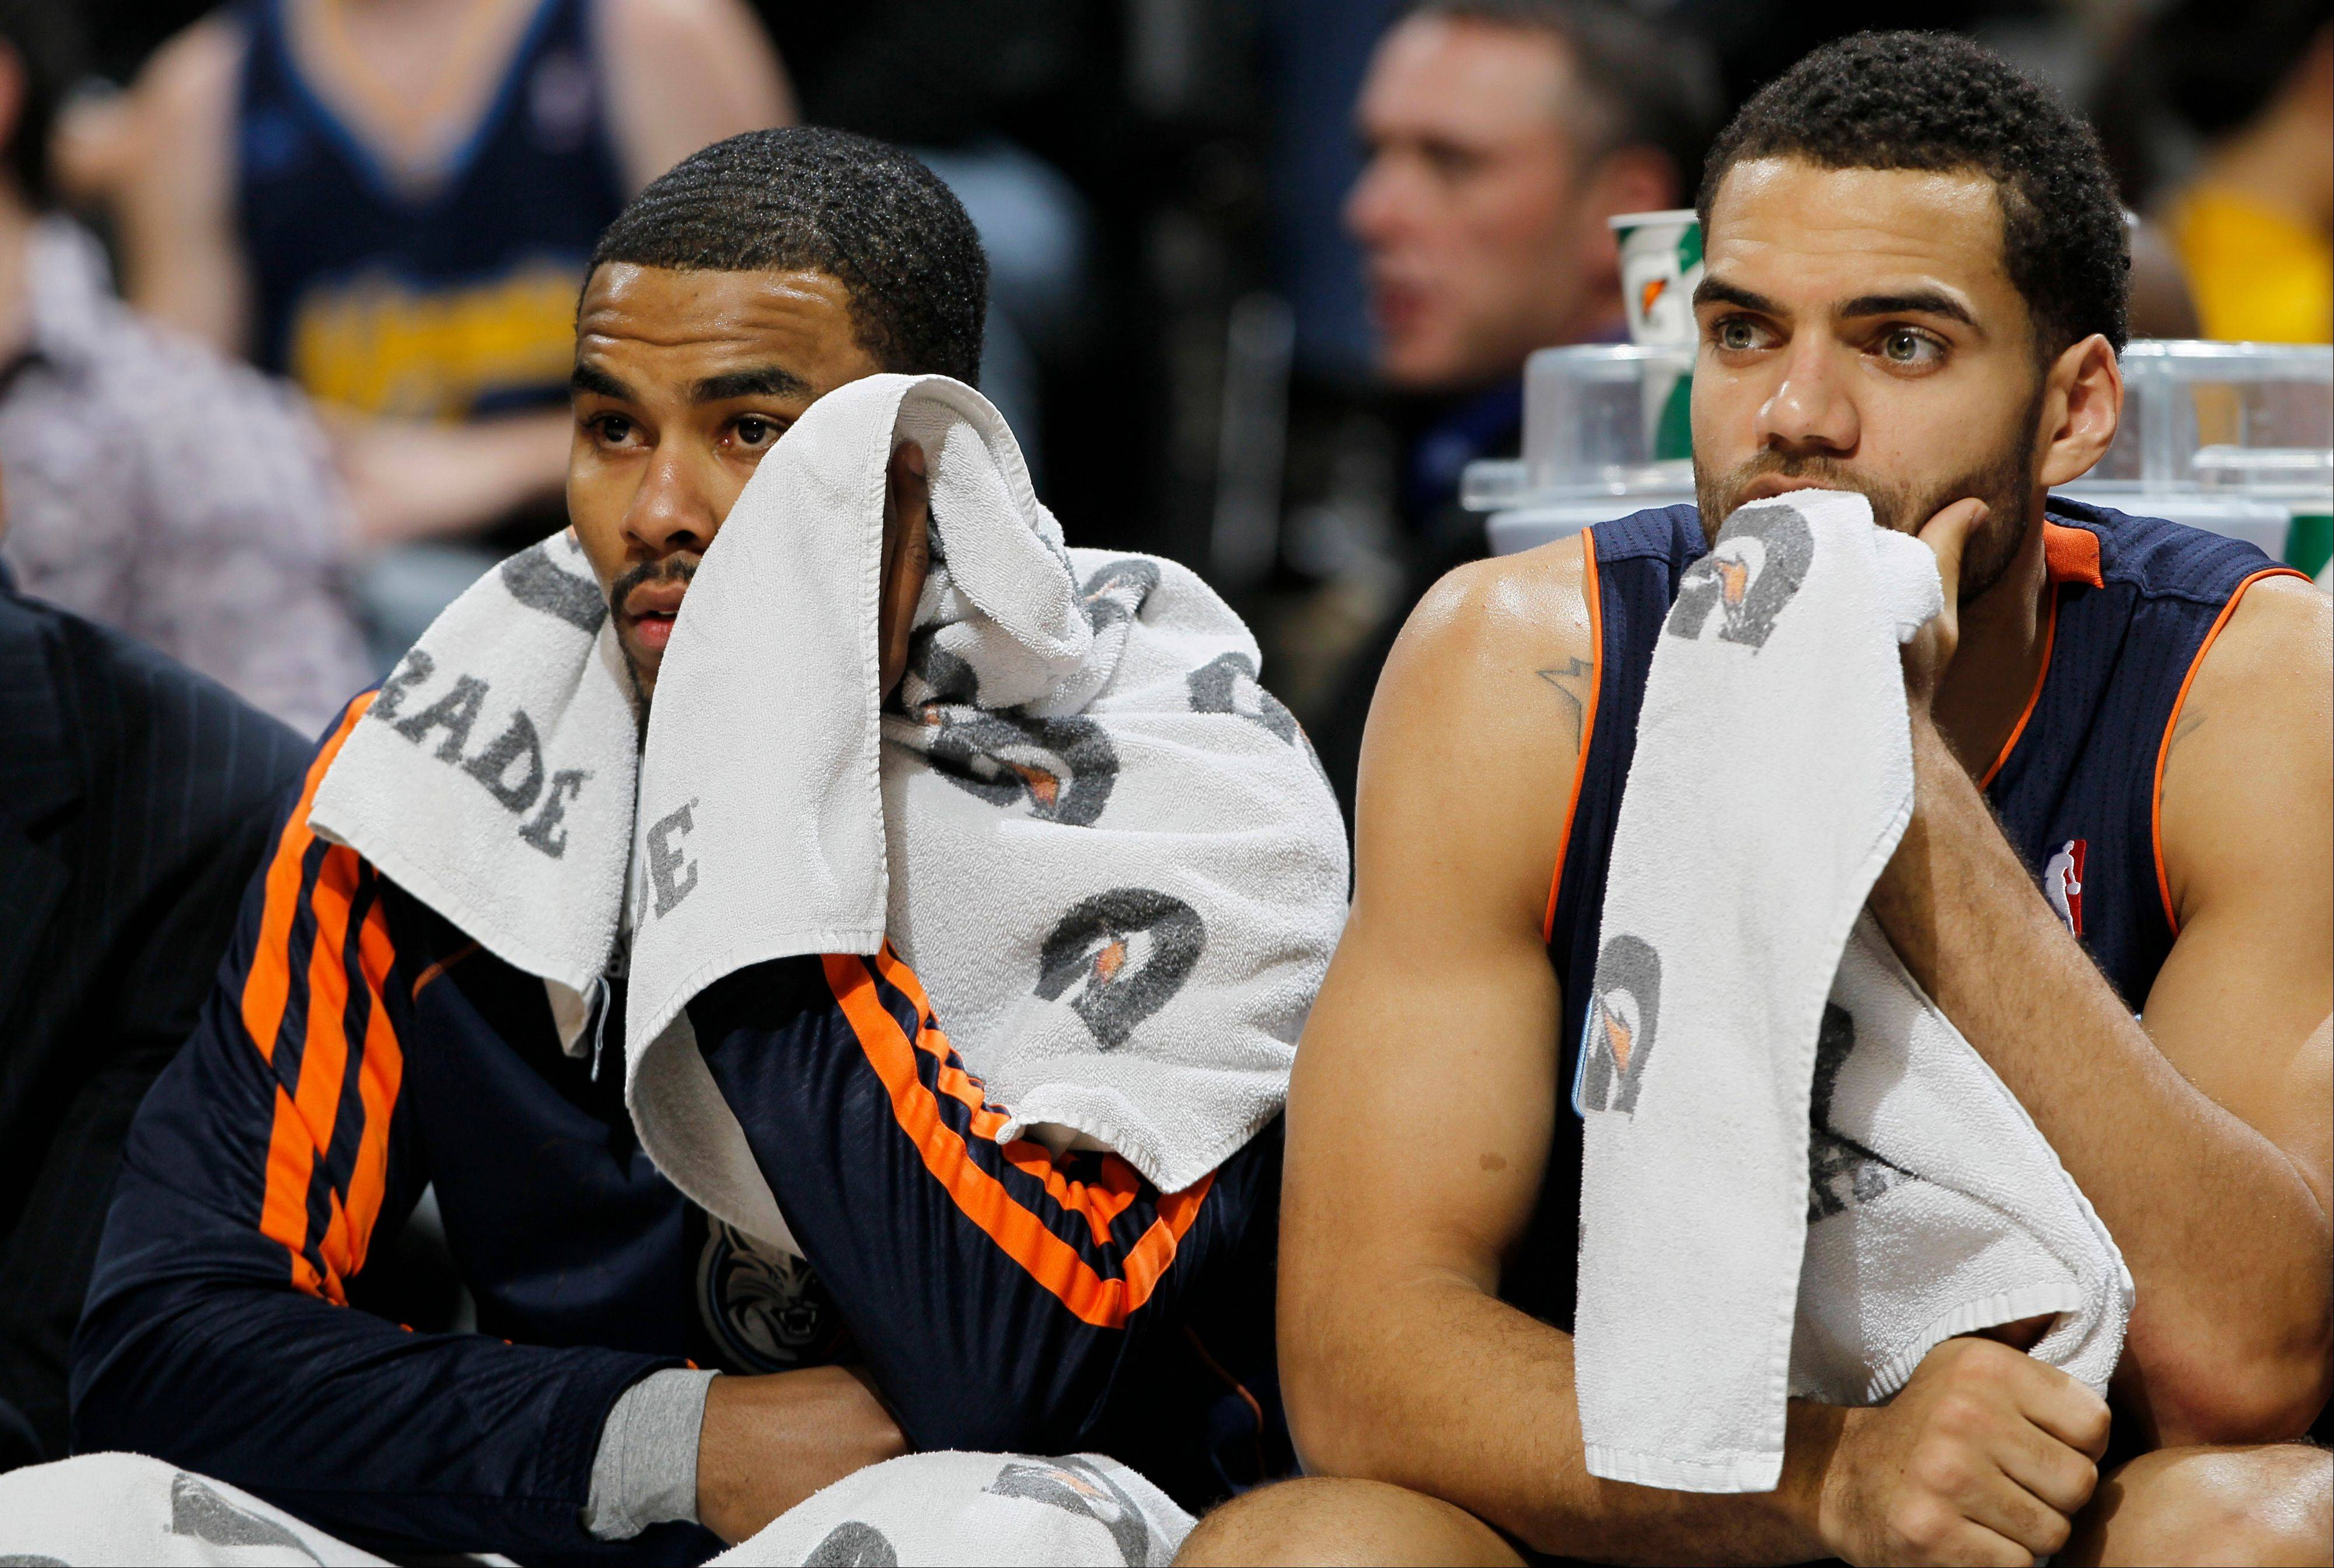 Charlotte Bobcats guard Ramon Sessions, left, and rookie forward Jeff Taylor watch as time runs out in Denver�s 110-88 victory over the Bobcats last Saturday. Michael Jordan�s team, which has lost 16 straight games, plays Brooklyn tonight.